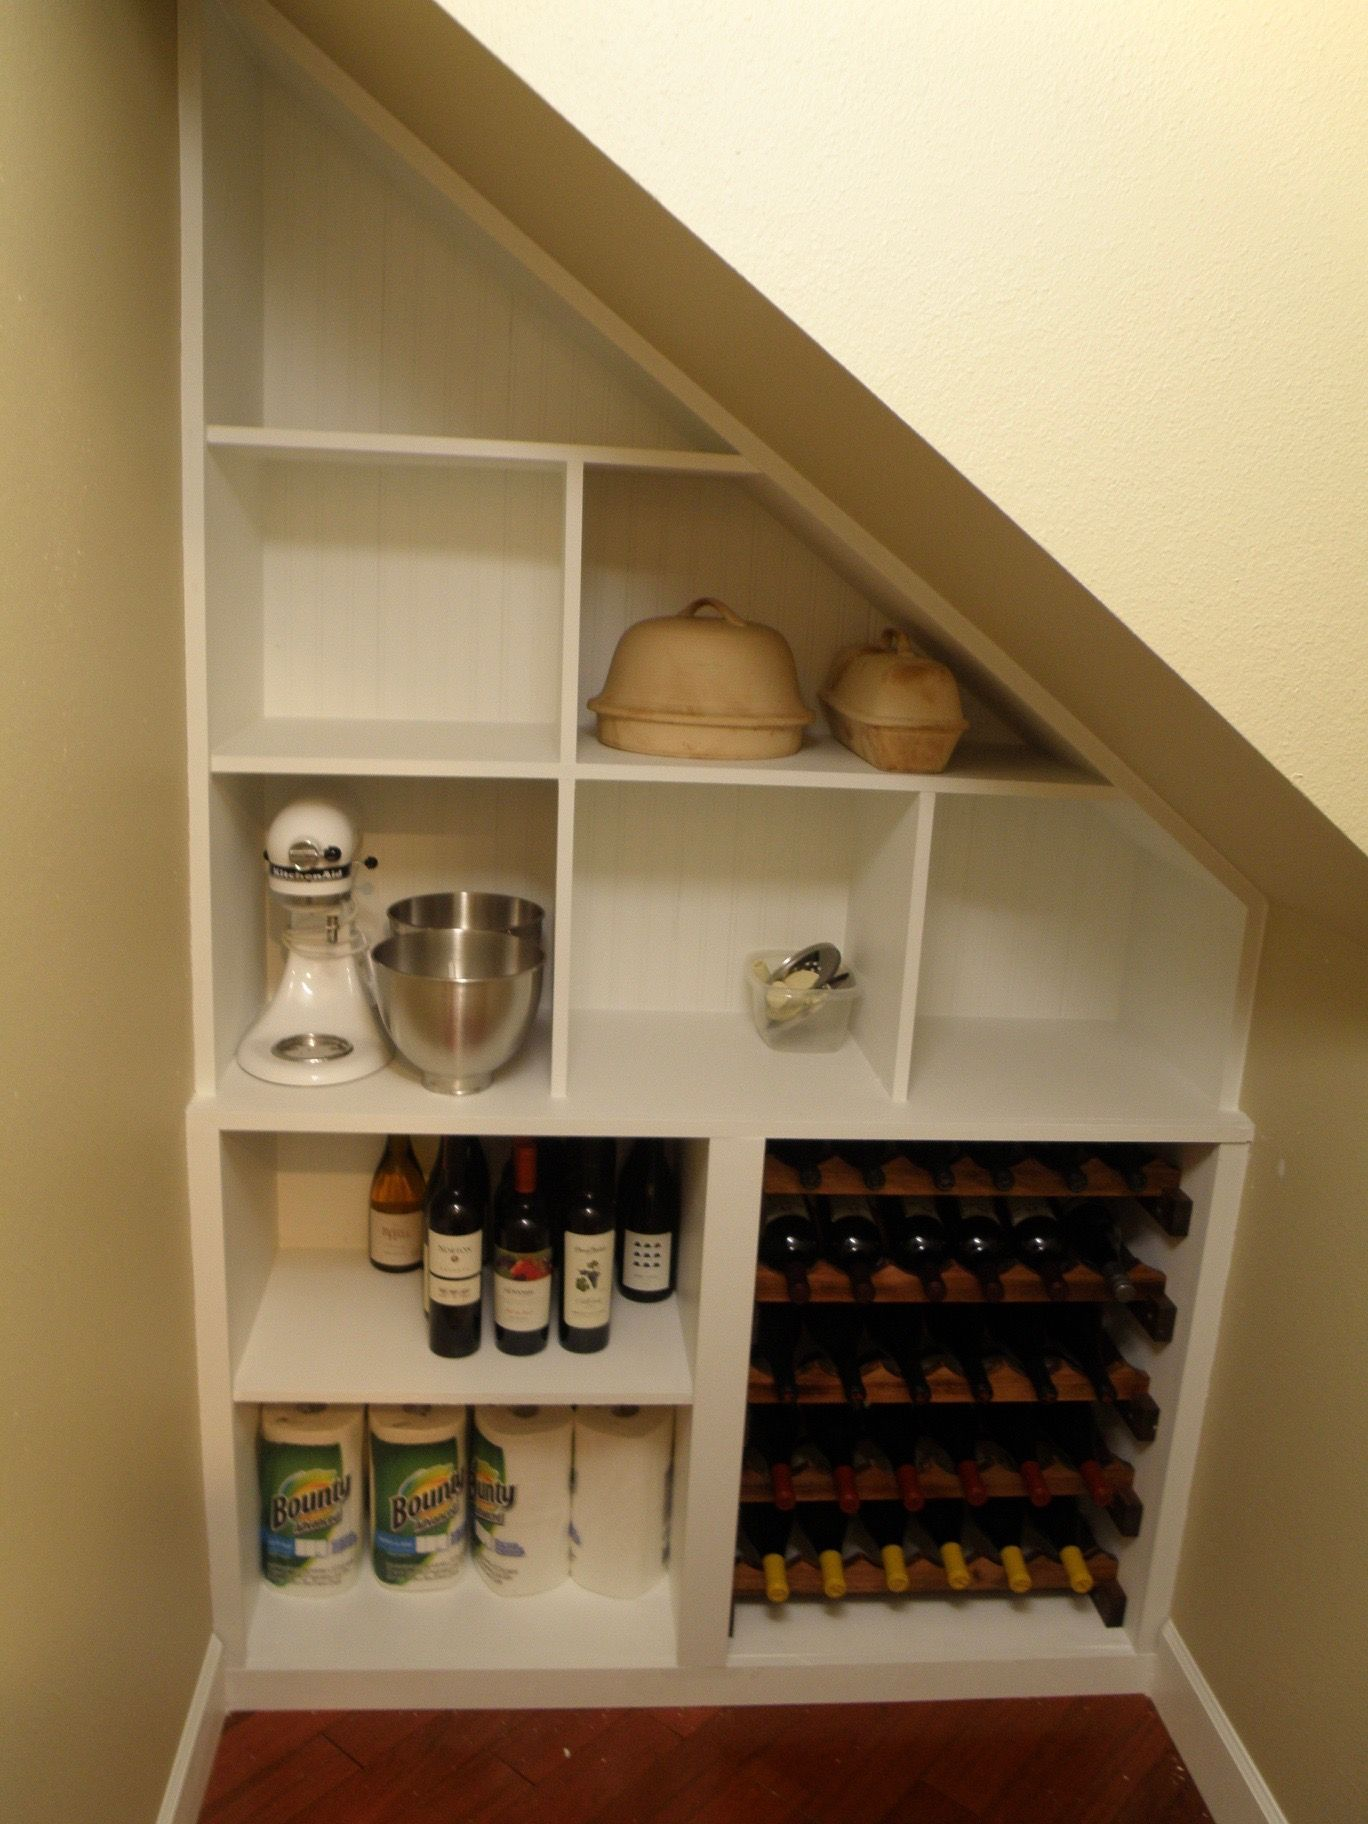 Kitchen Pantry Shelving Creates Great Additional Storage Space In A Small Closet Under An Exis Closet Under Stairs Small Apartment Closet Under Stairs Pantry